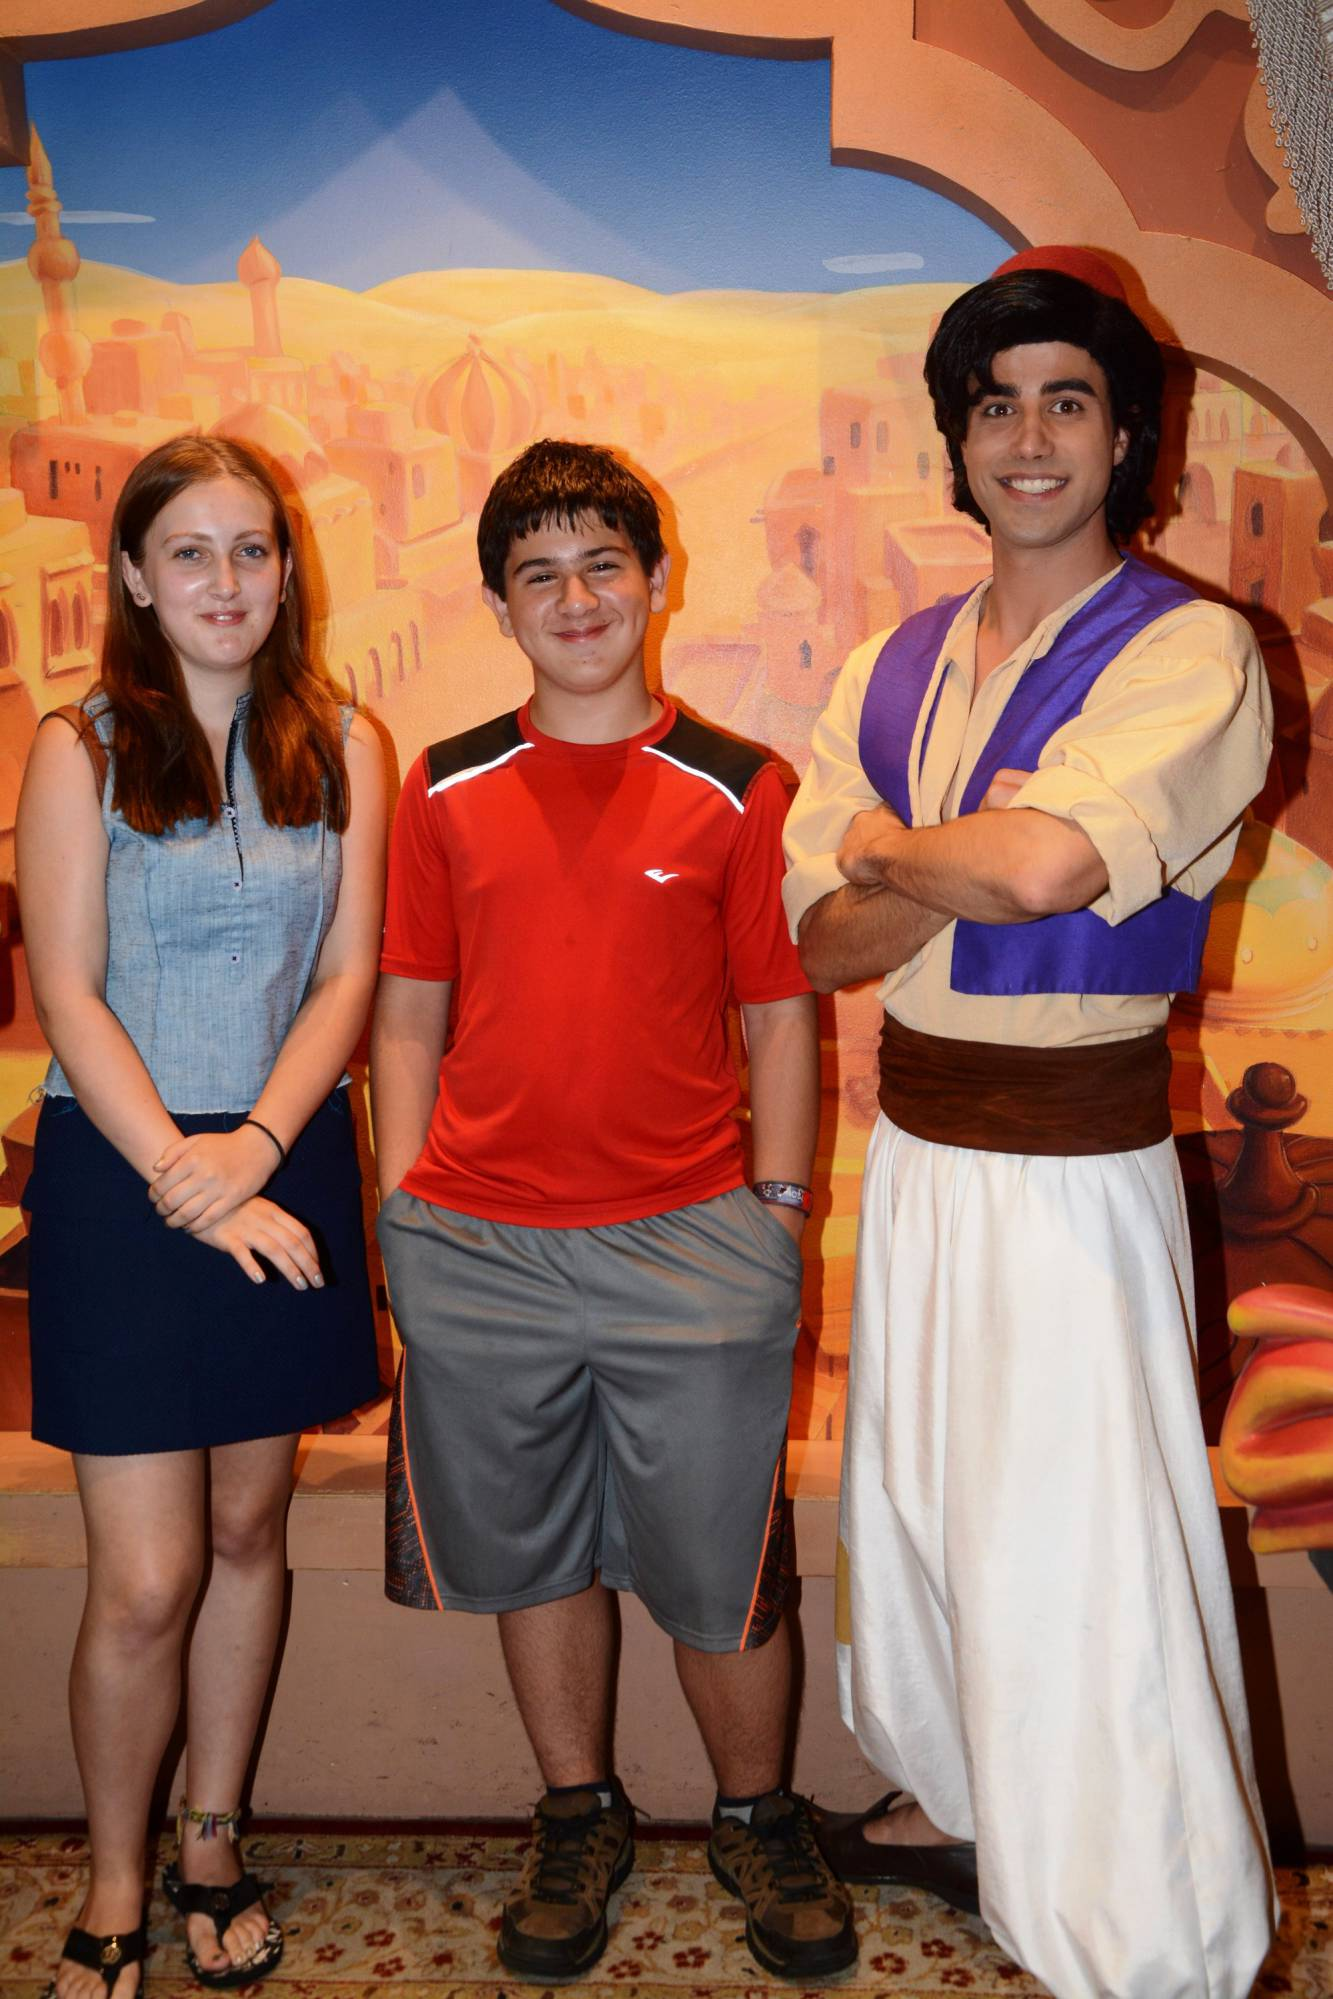 Tips for touring Walt Disney World with teens |PassPorter.com